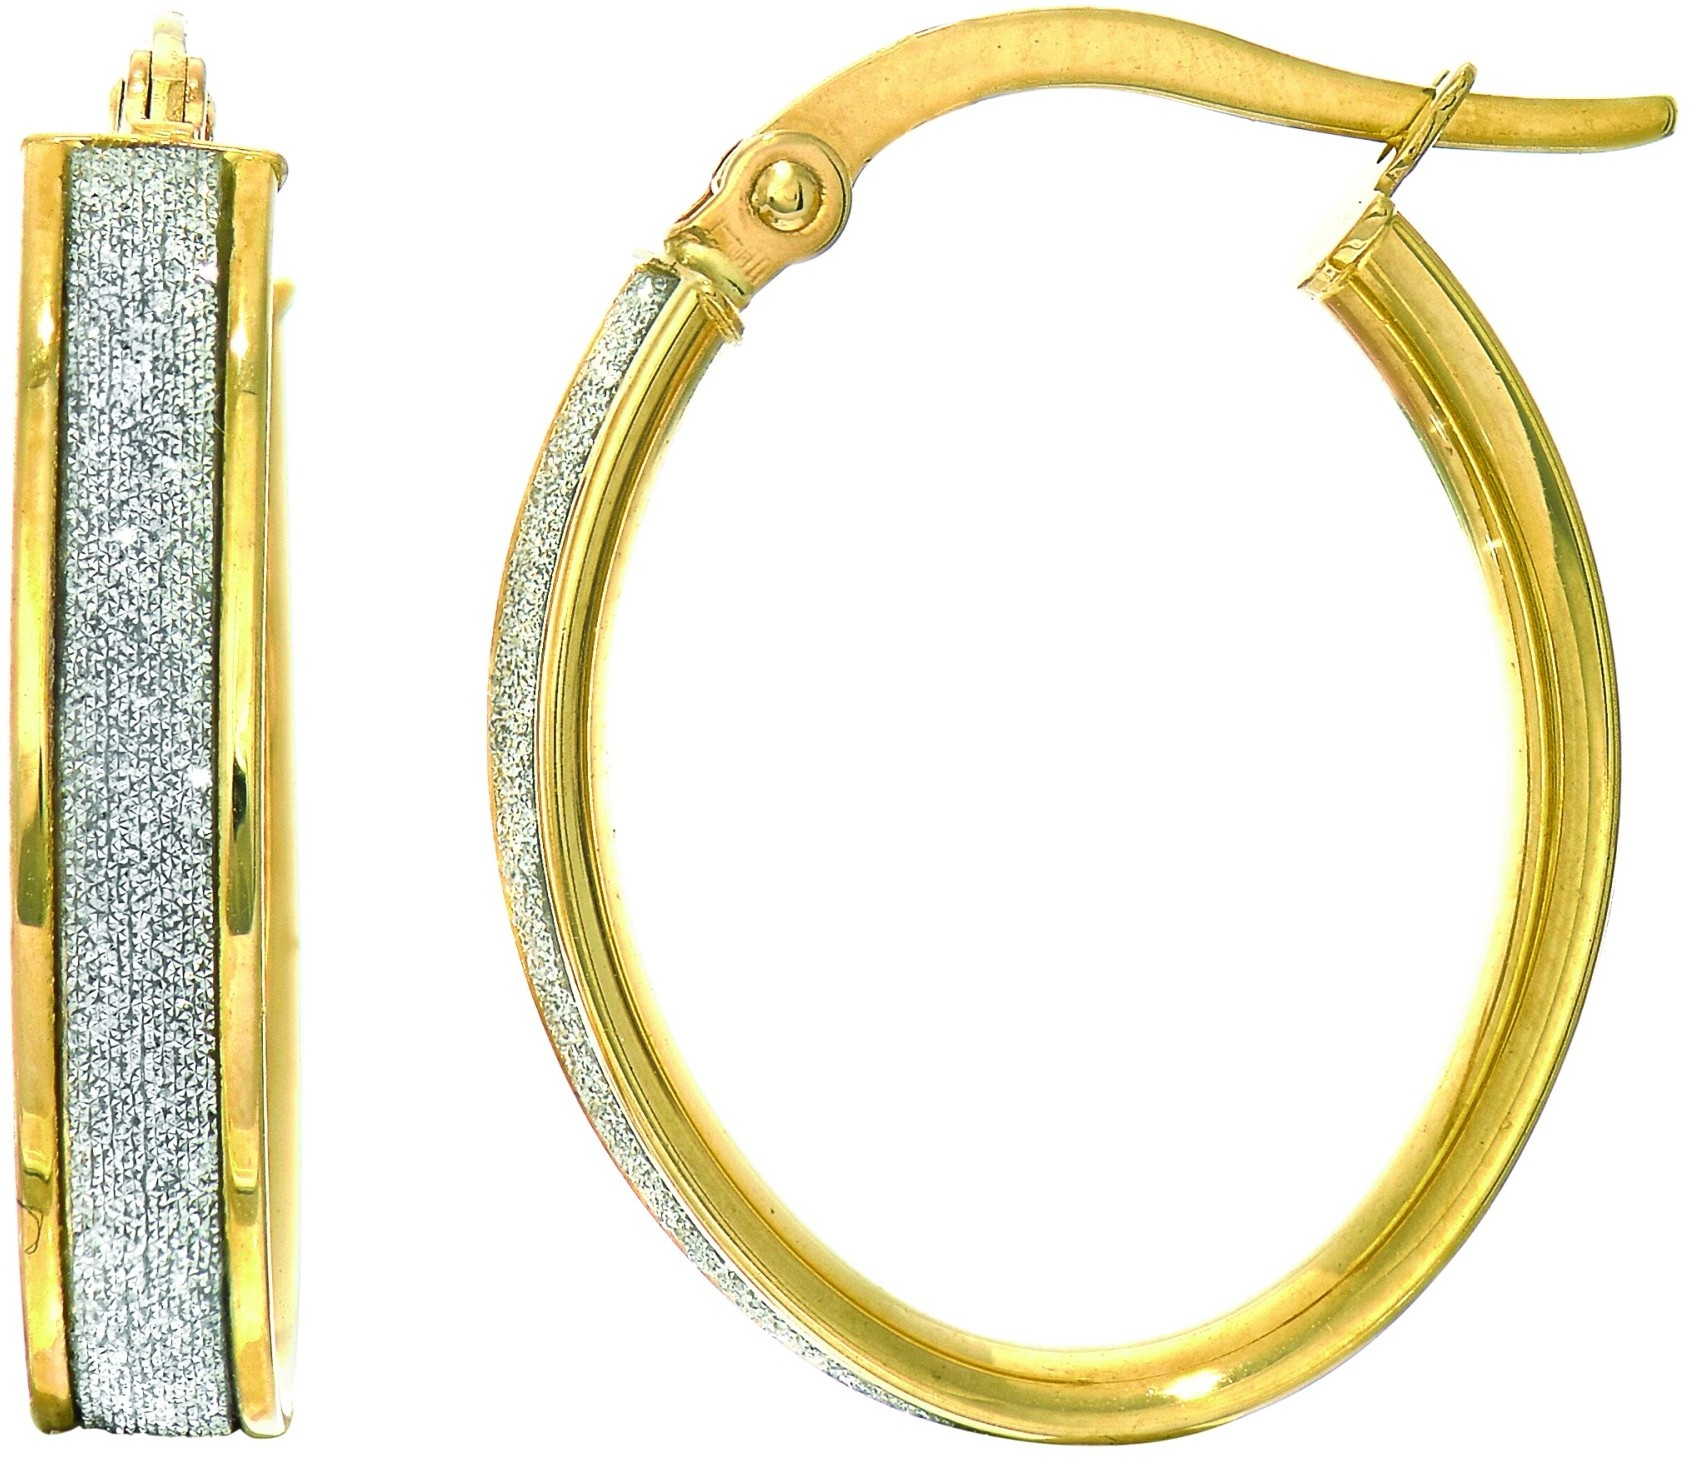 14K Yellow Gold 3.75x14x17mm Shiny Oval Hoop Earrings